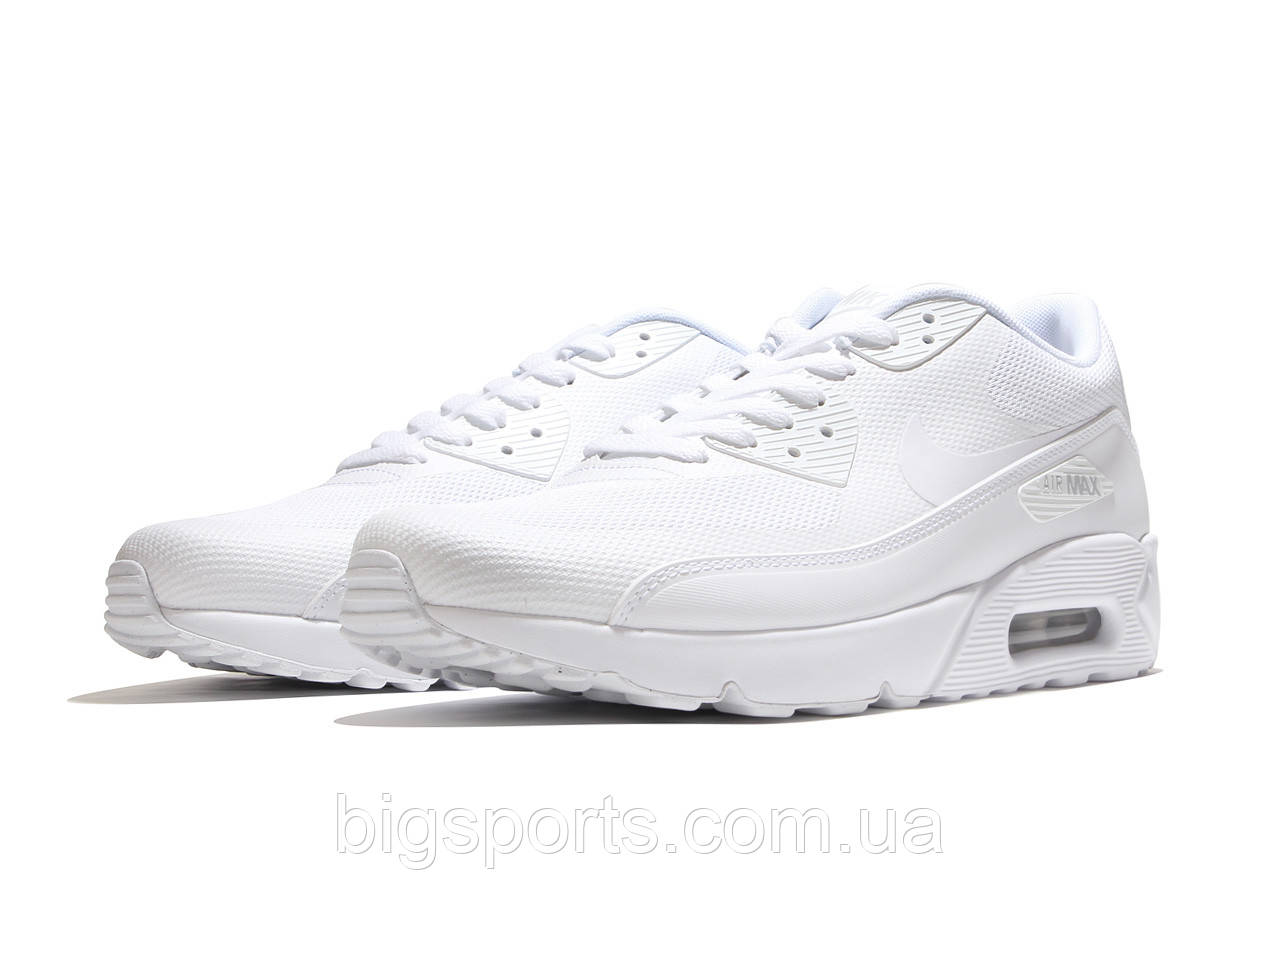 Кроссовки муж. Nike Air Max 90 Ultra 2.0 Essential (арт. 875695-101 ... bb9357b5856